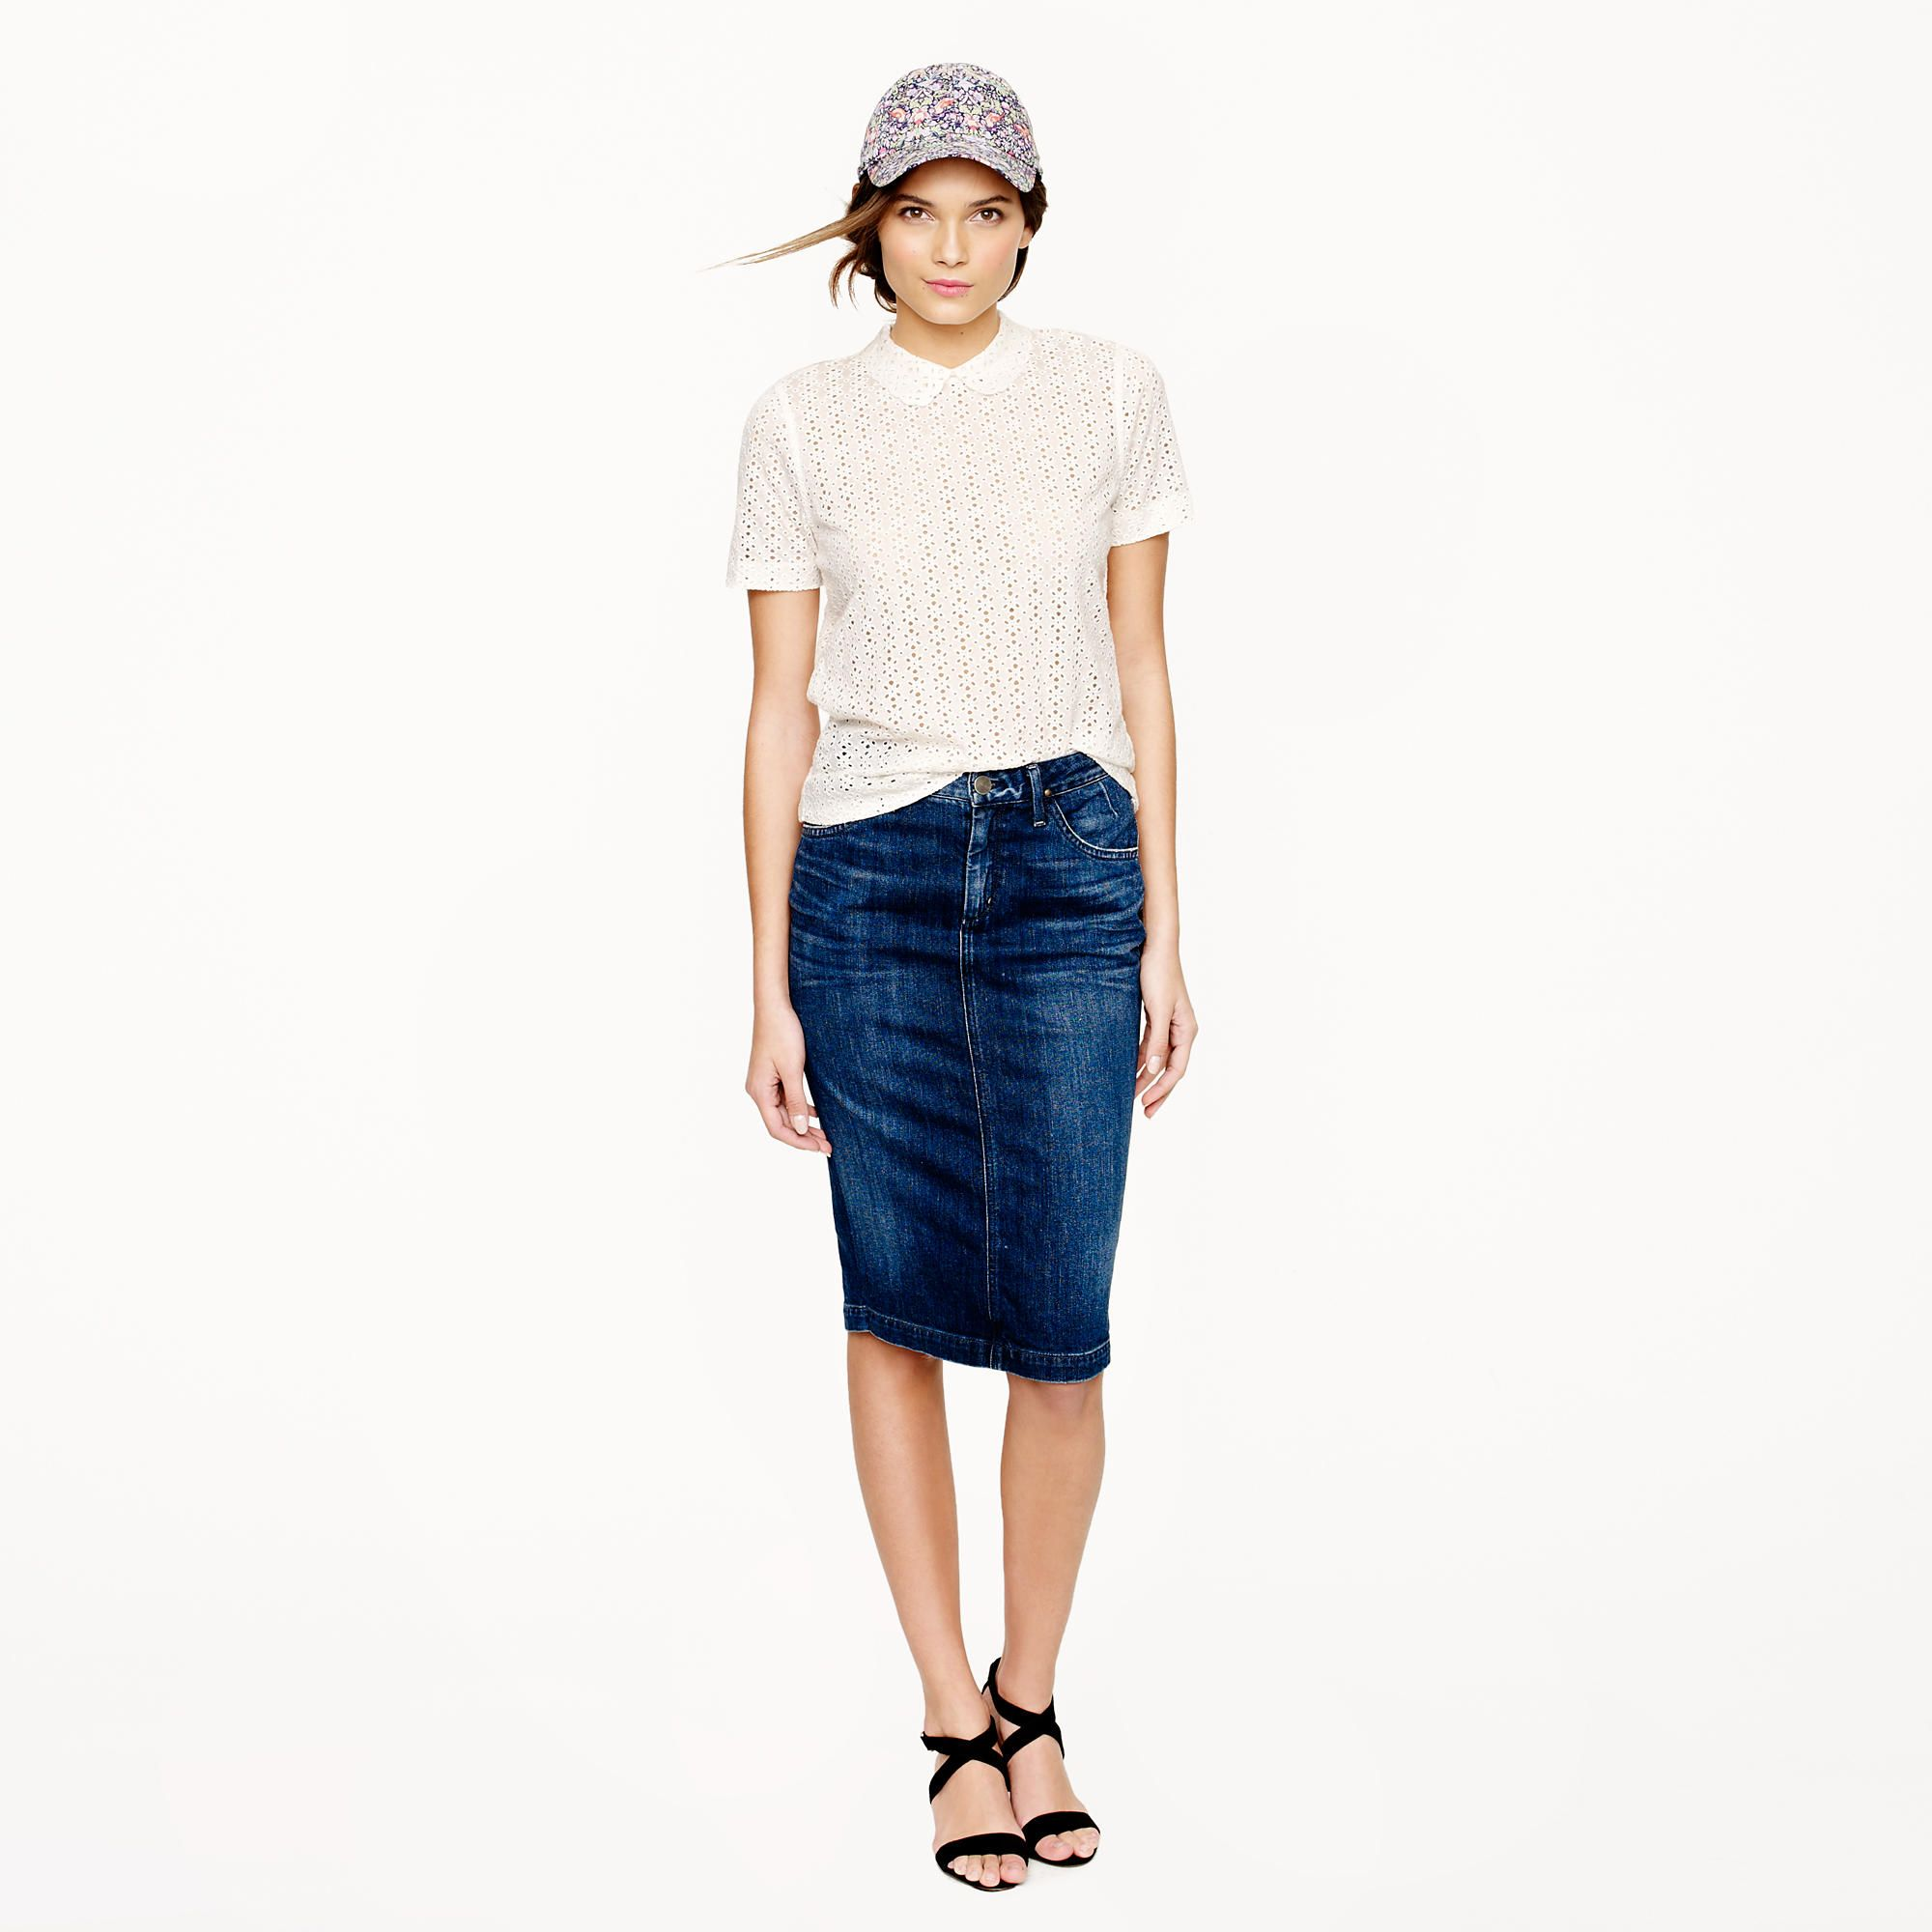 7dfc5925b2 Goldsign® for J.Crew Holly skirt in martel wash : pencil | J.Crew ...